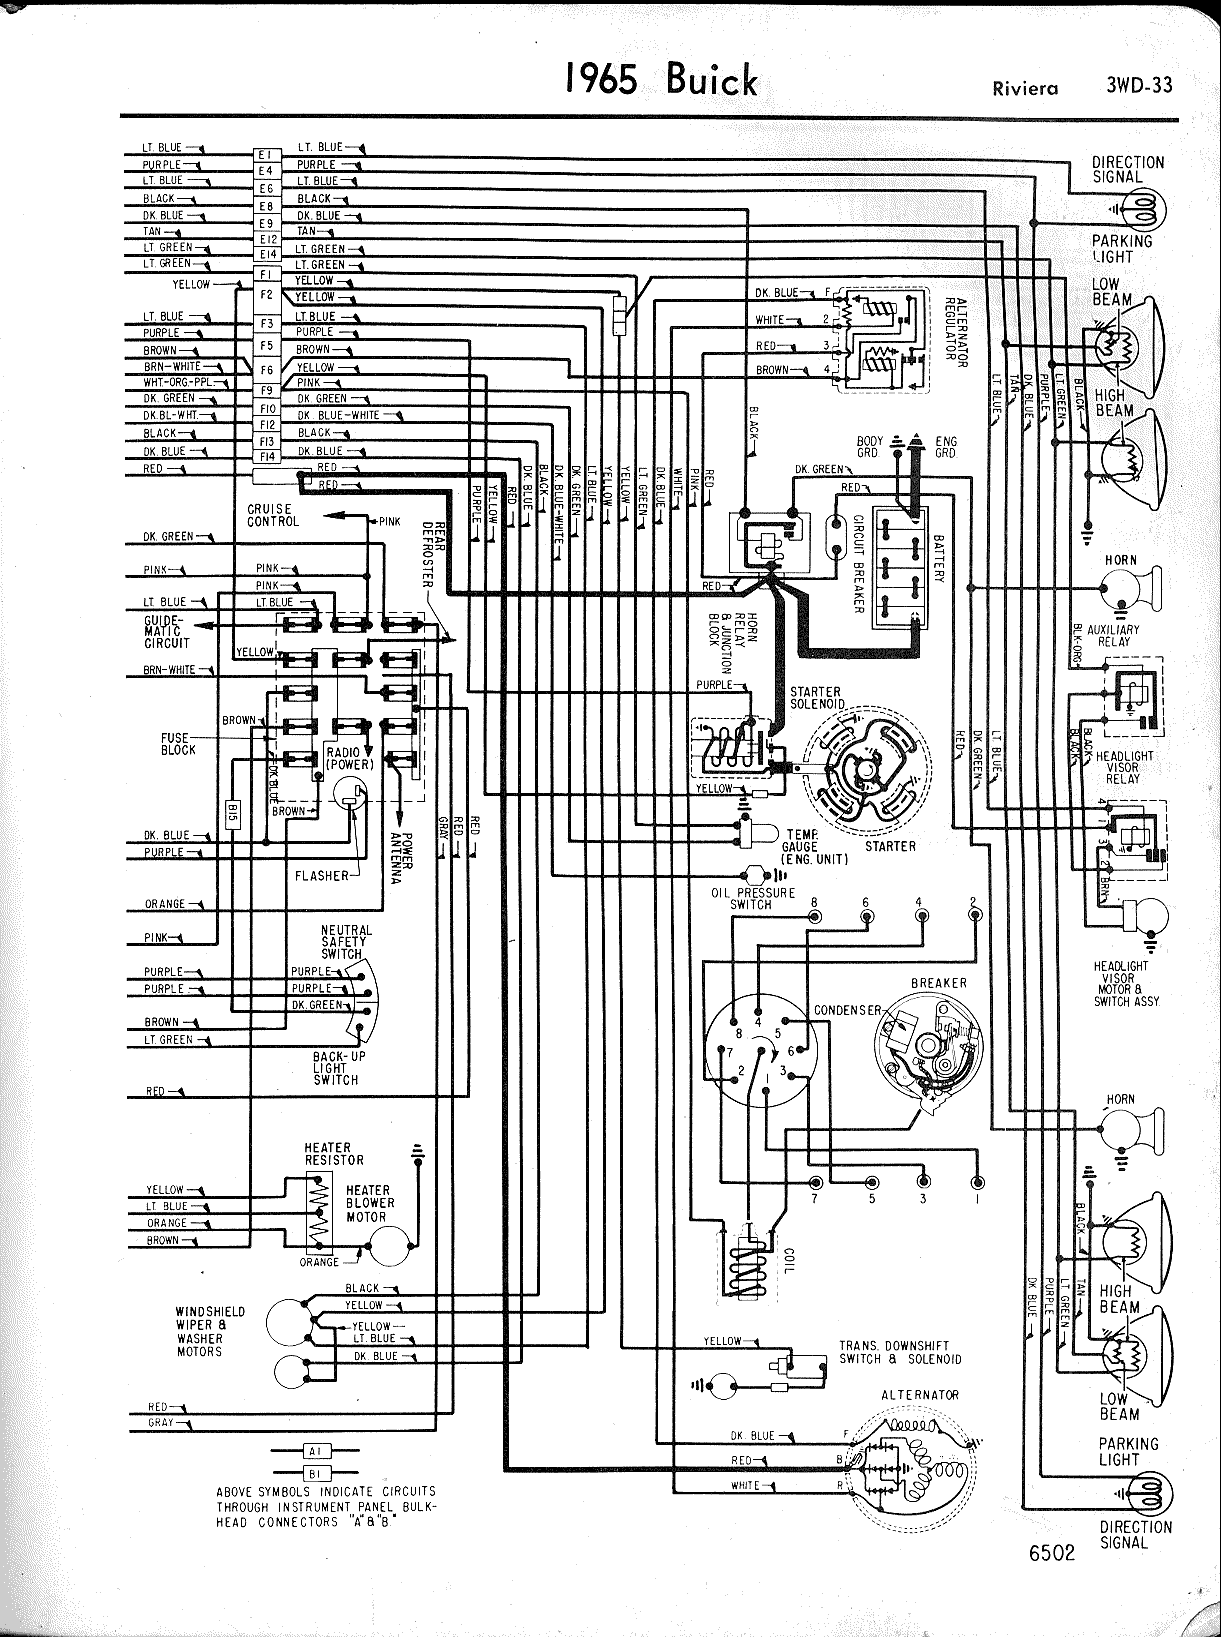 Buick Electra Wiring Diagram Reinvent Your 1983 Dodge Diplomat Diagrams 1957 1965 Rh Oldcarmanualproject Com 1962 Century